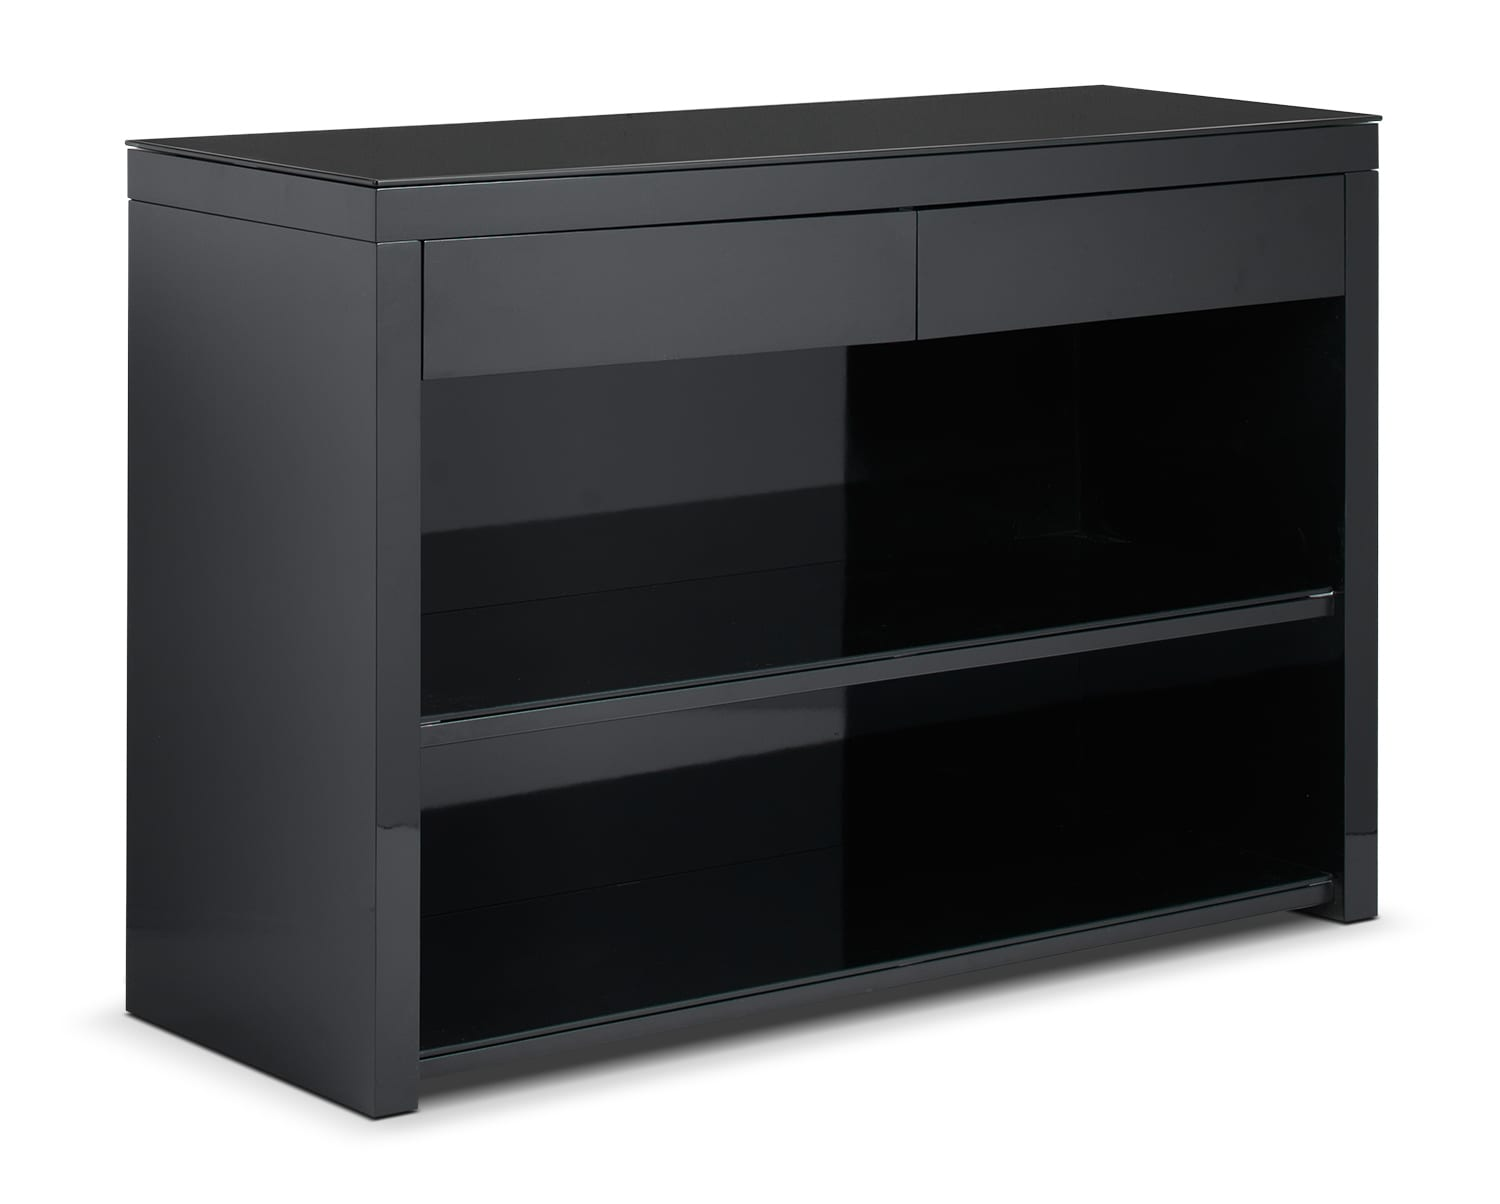 Dining Room Furniture - Bleecker Server - Black